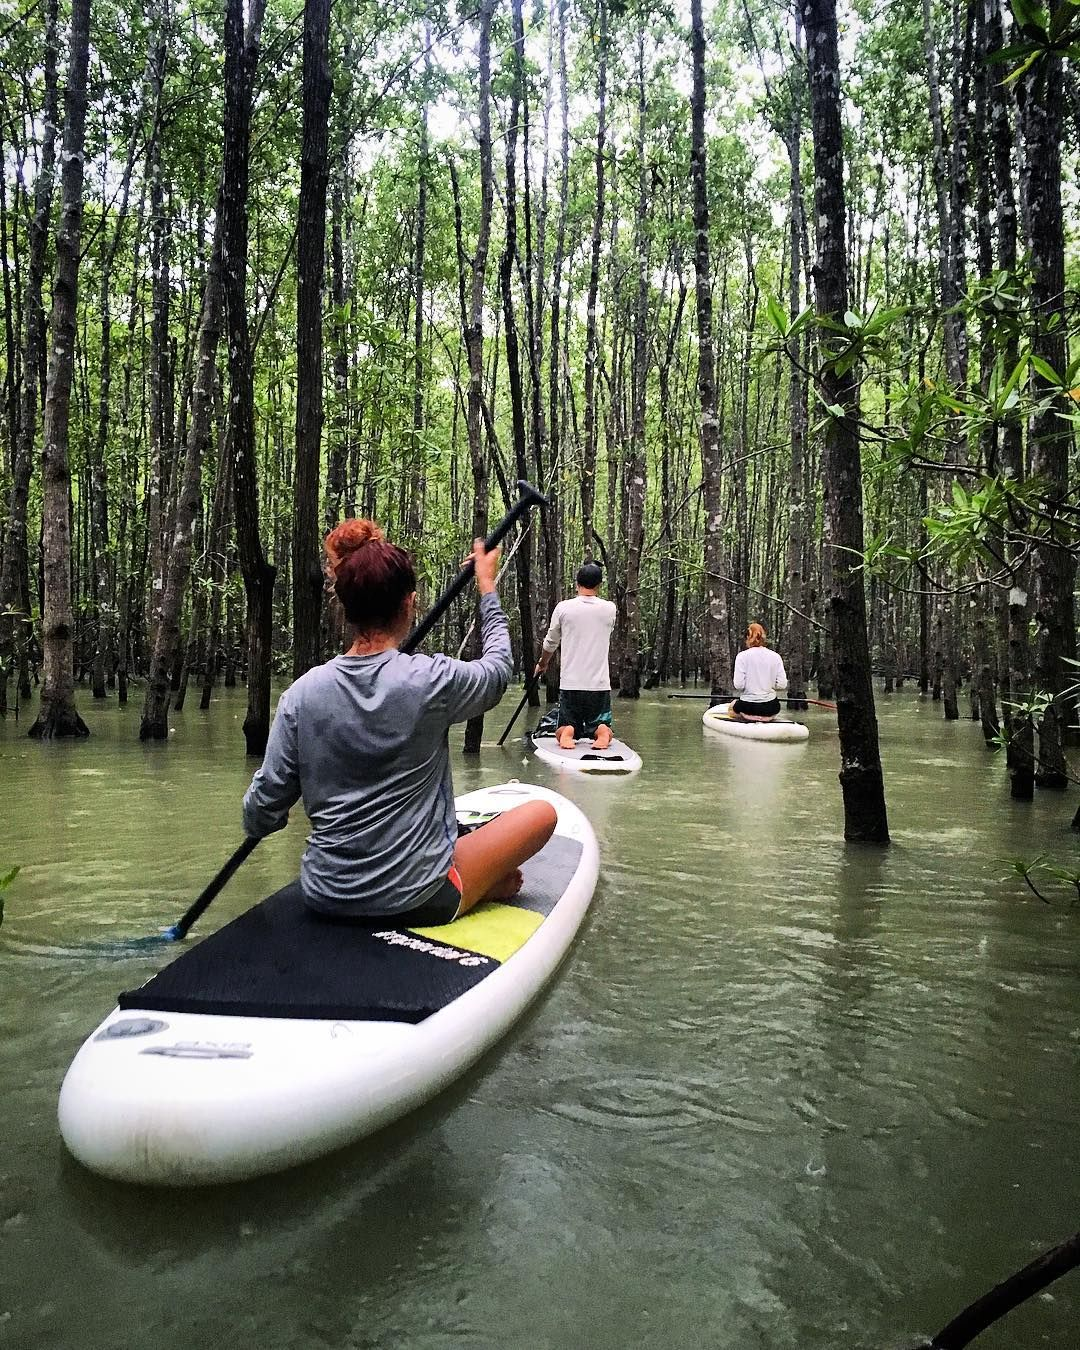 Pin By Iffah Fathin On Style: Paddle Boarding Through The Mangroves This Morning